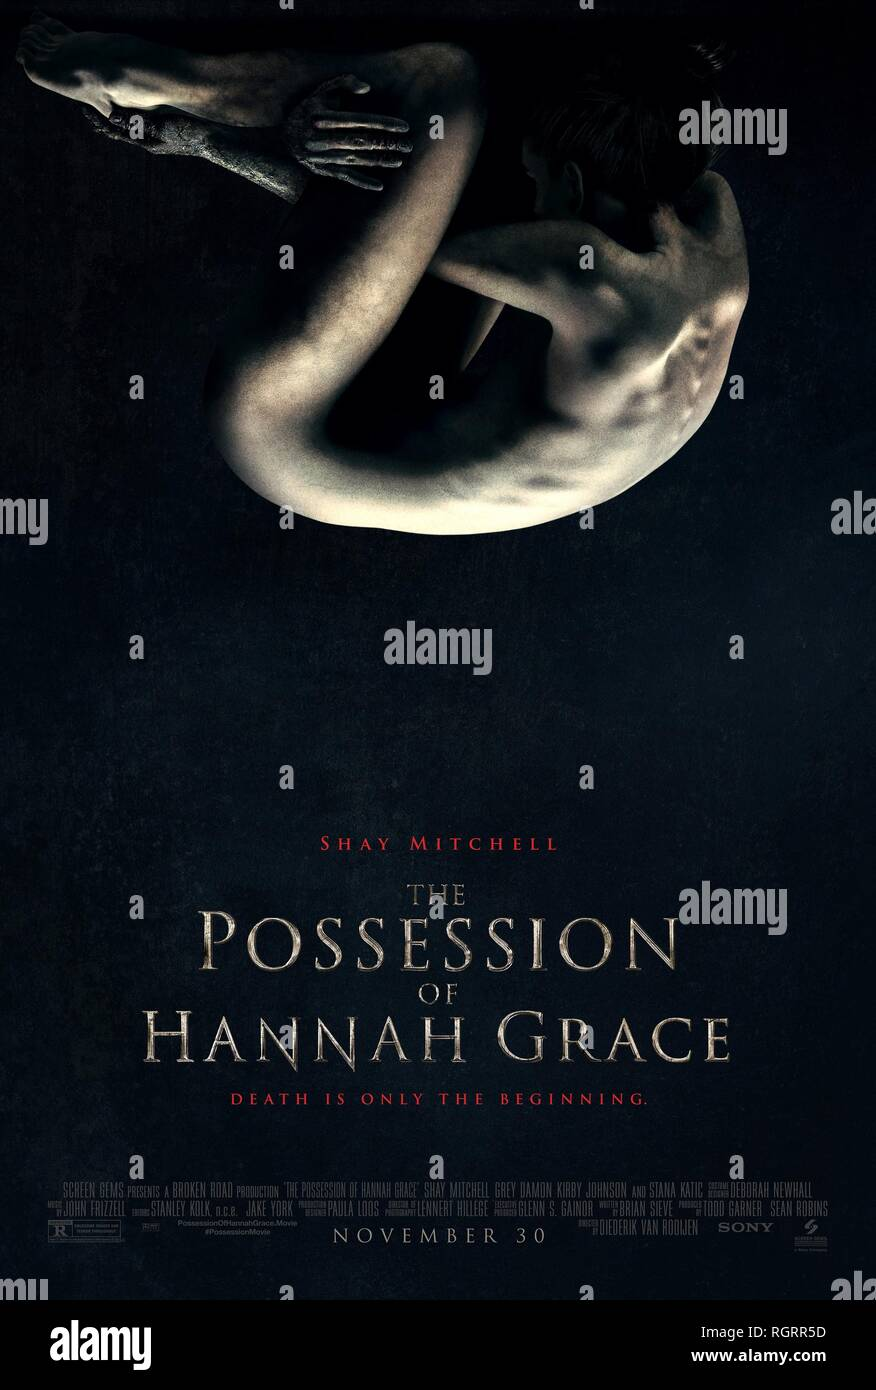 THE POSSESSION OF HANNAH GRACE, MOVIE POSTER, 2018 - Stock Image